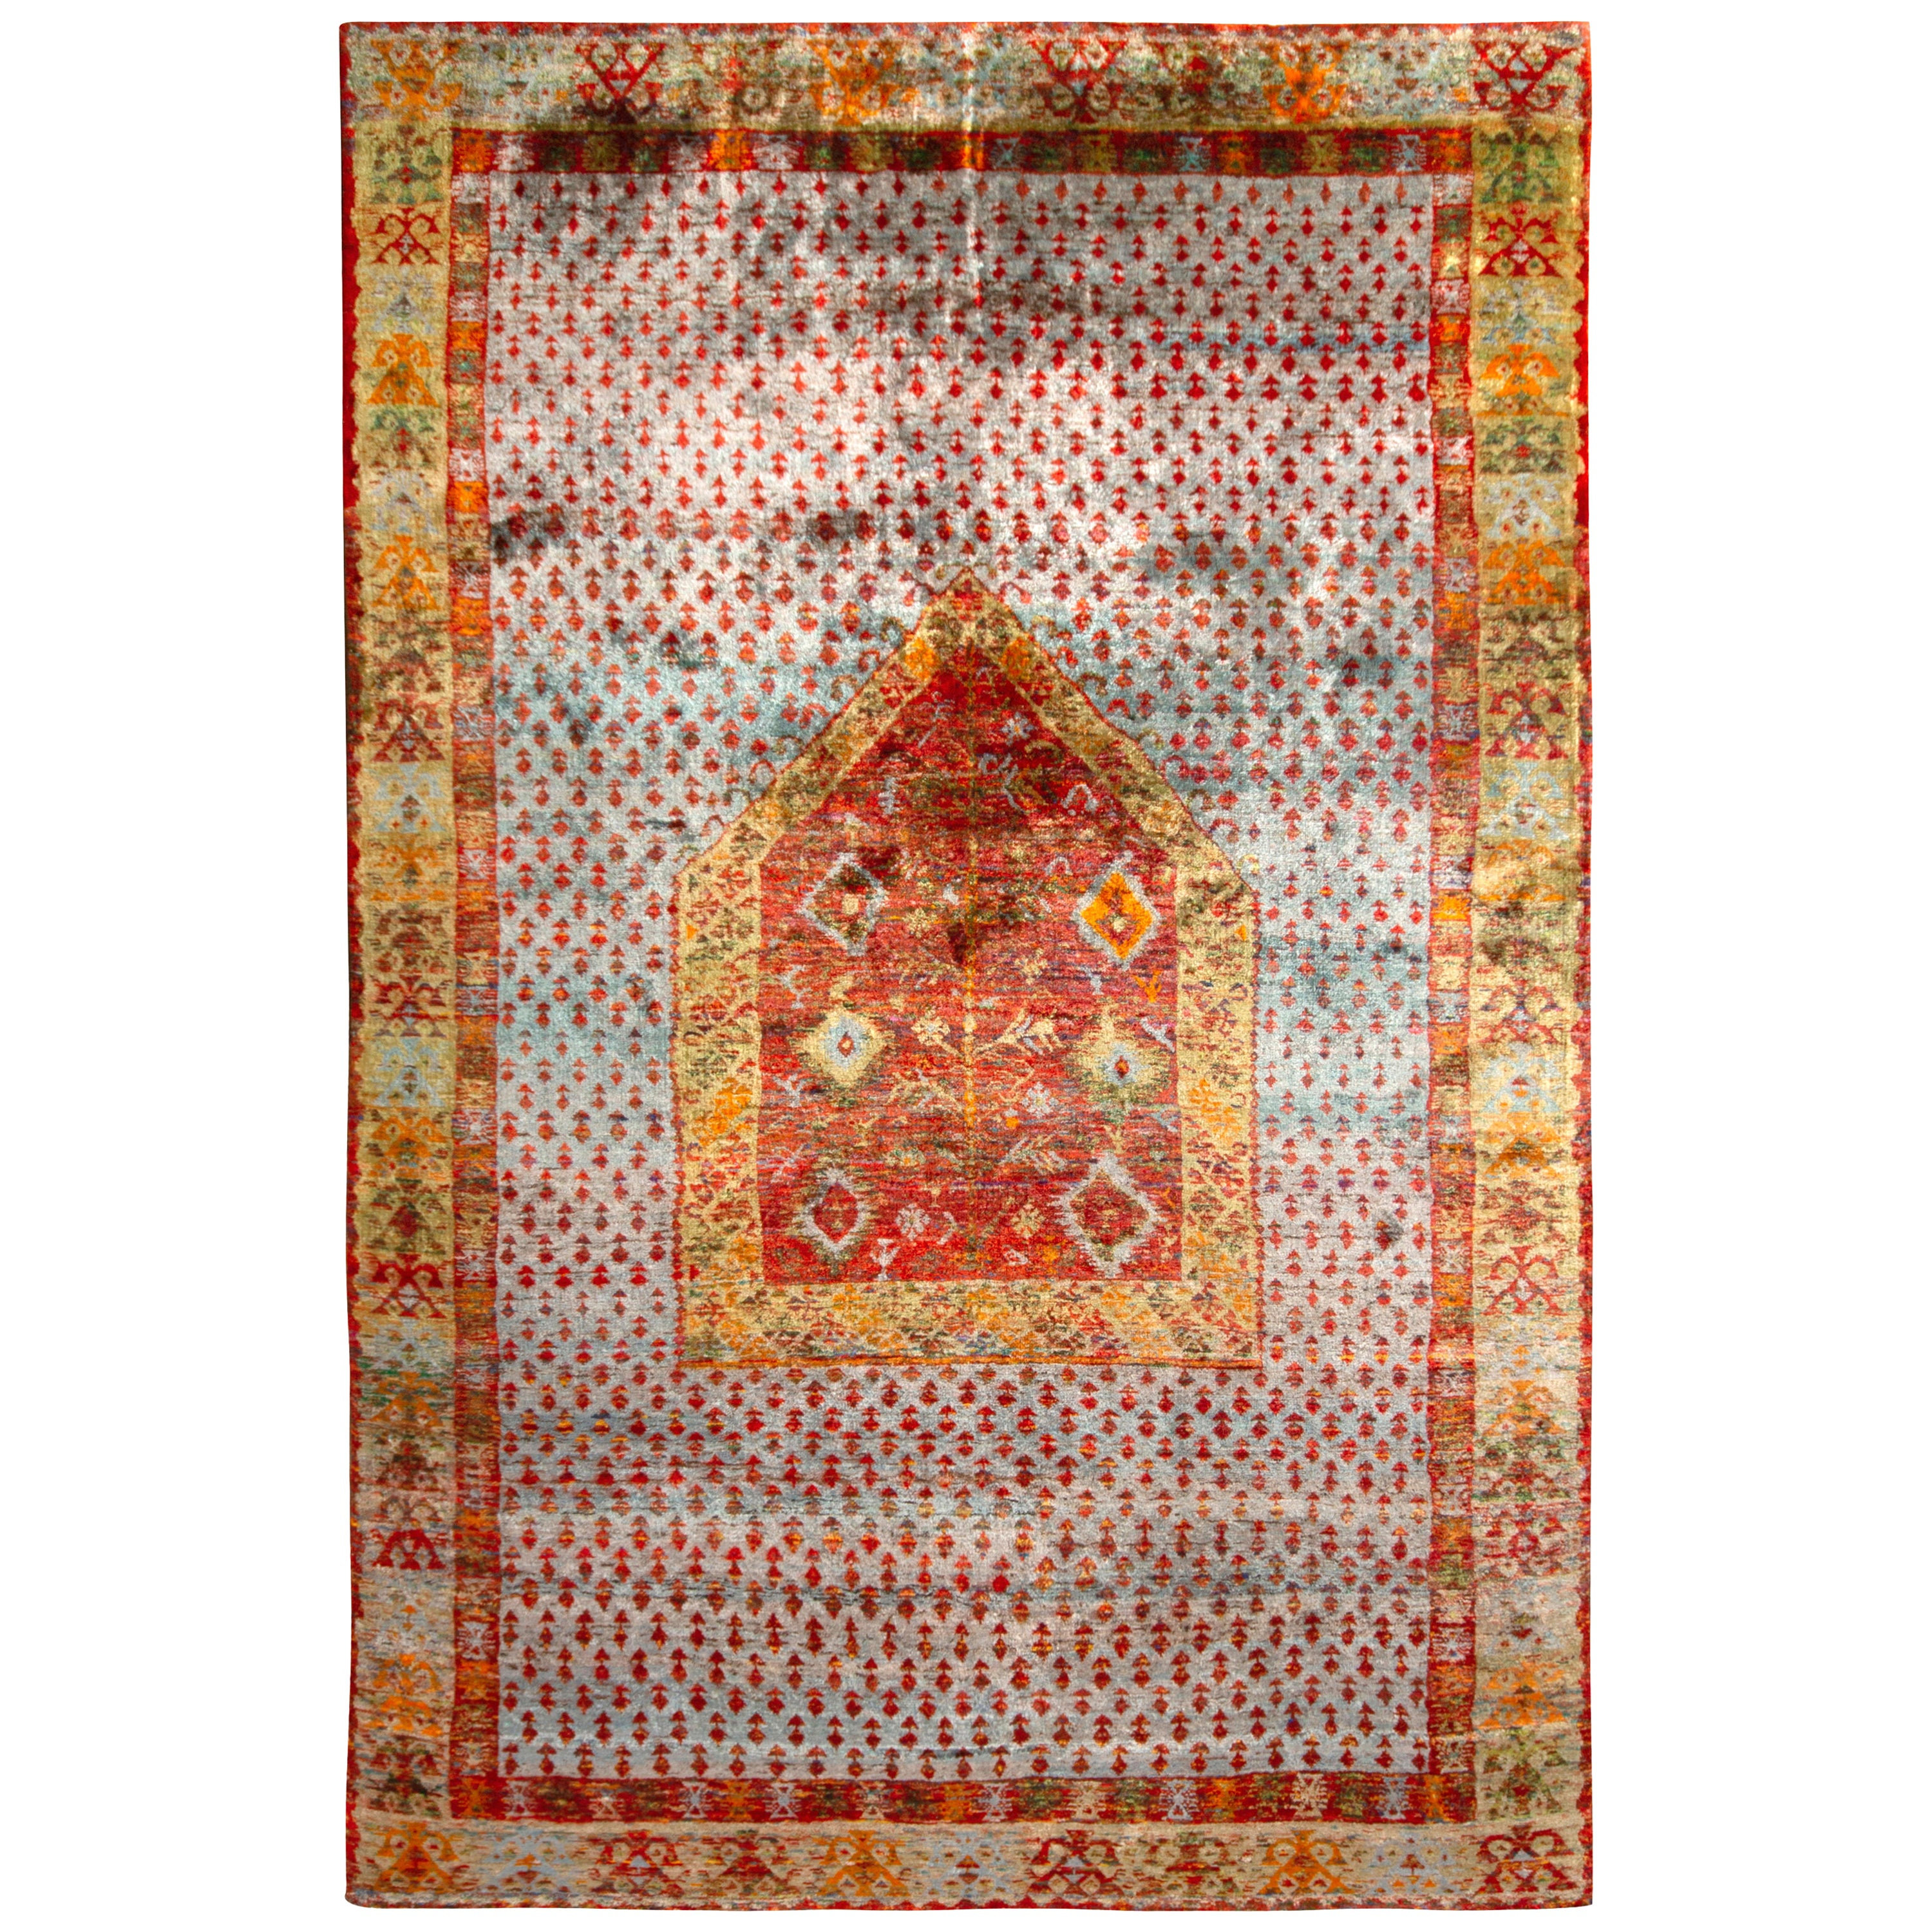 Anatolian Style Pure Silk Rug Blue Gold and Red Geometric Pattern by Rug & Kilim